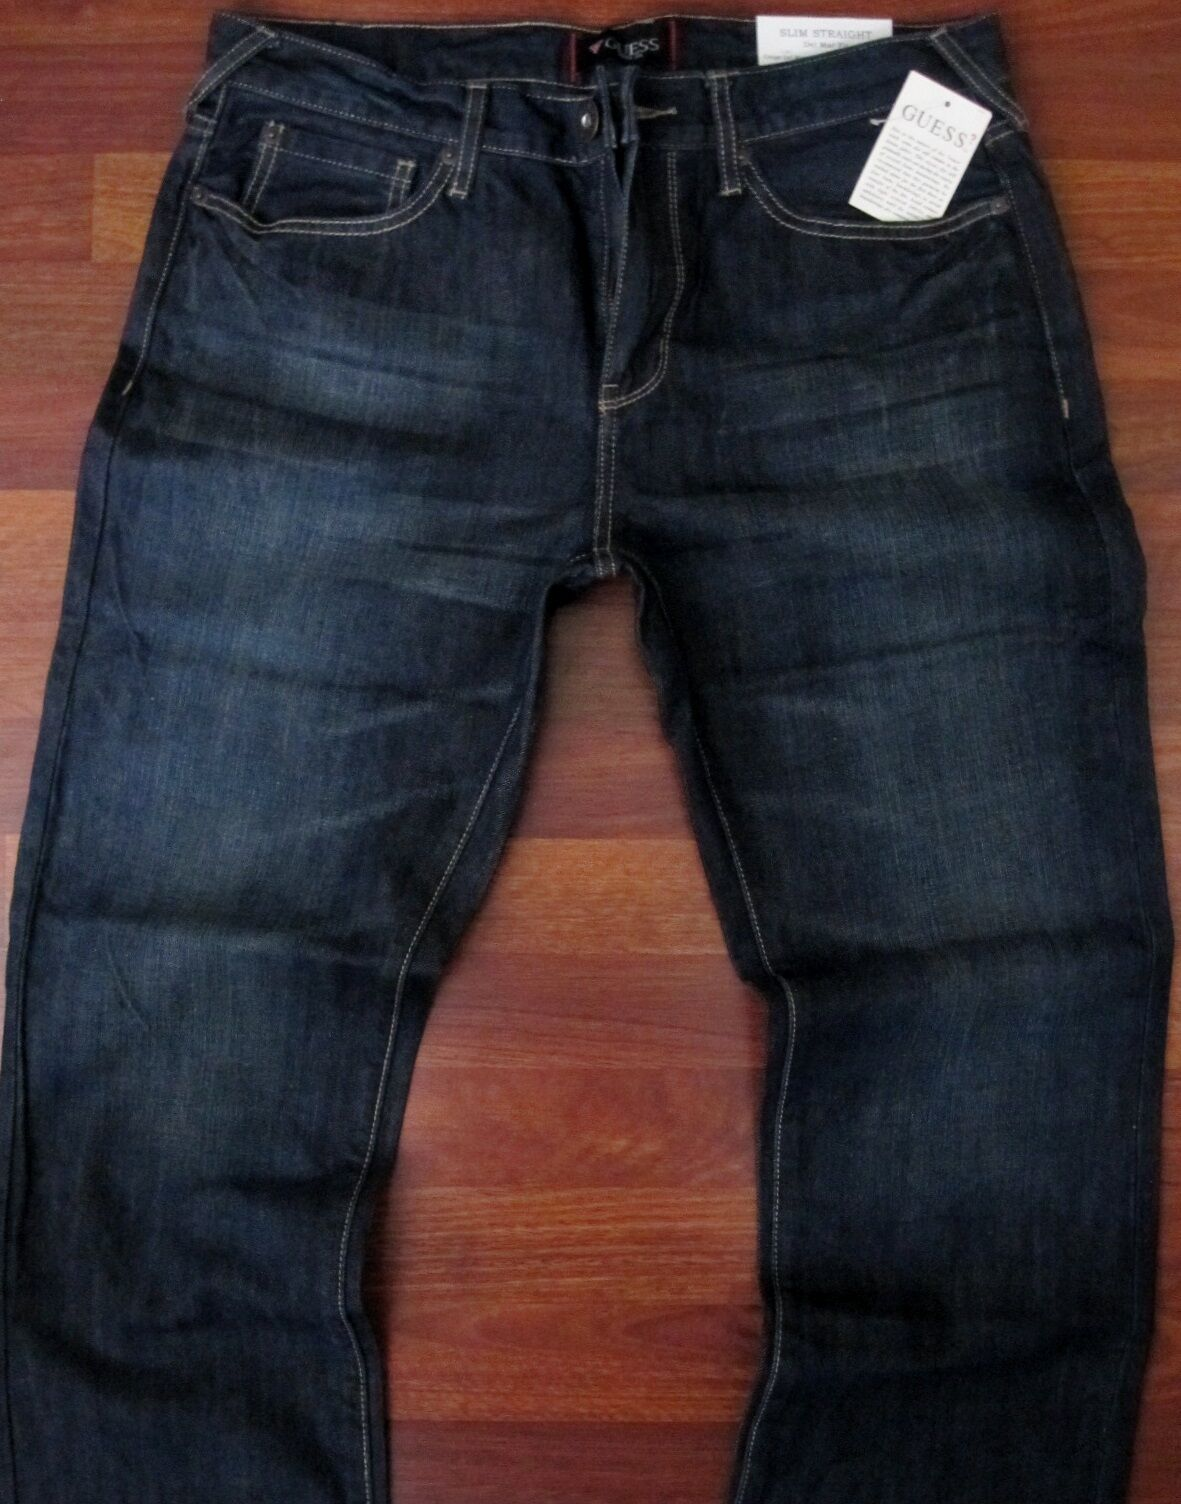 Guess Slim Straight Leg Jeans Men's Size 30 X 32 Low Rise Dark Distressed Wash